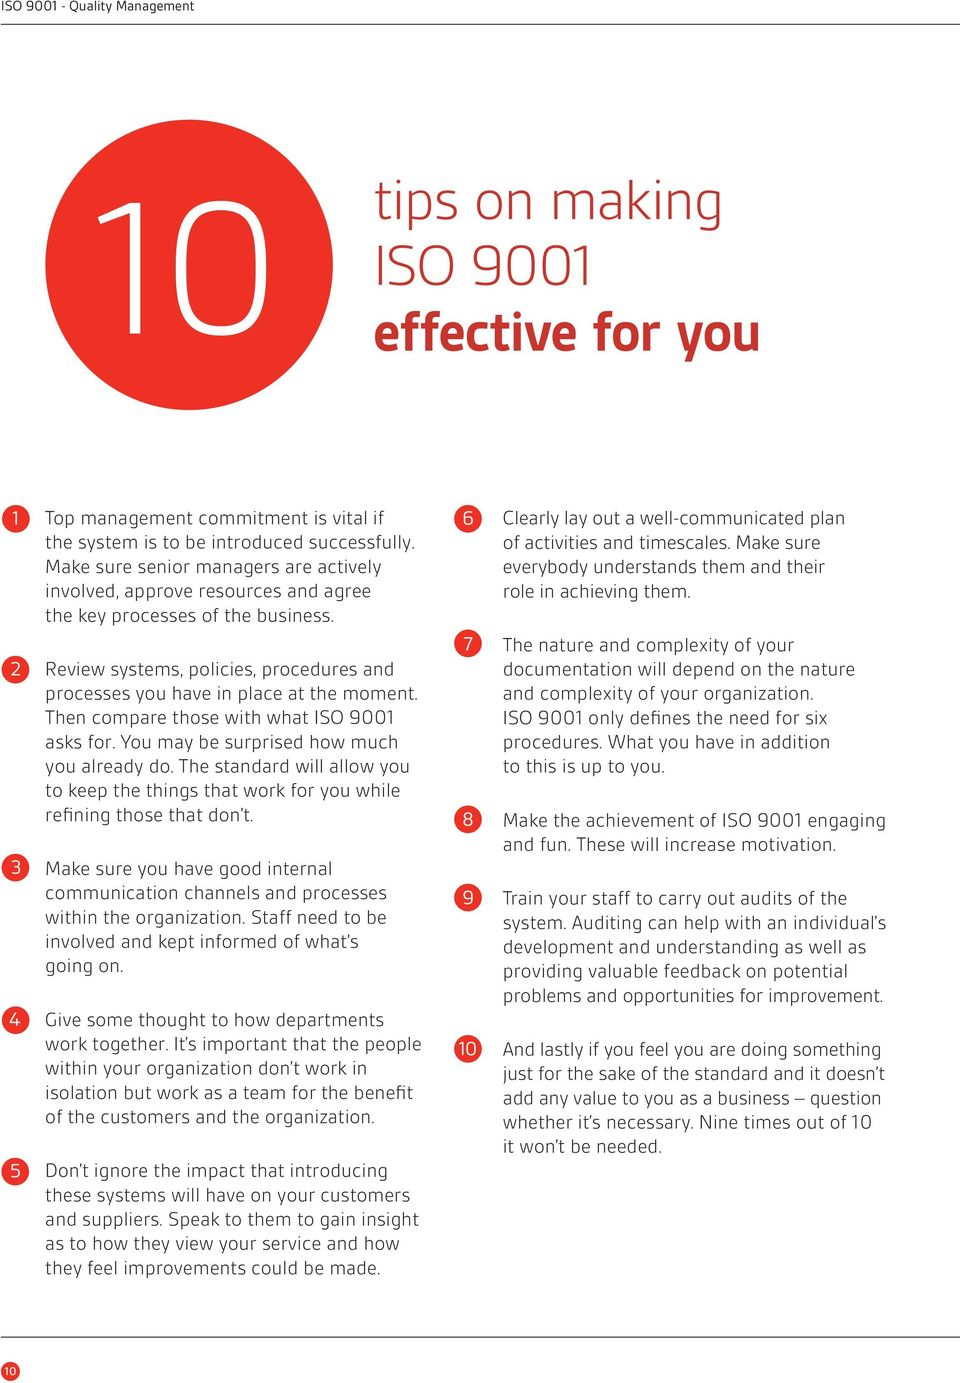 6 7 2 Review systems, policies, procedures and processes you have in place at the moment. Then compare those with what ISO 9001 asks for. You may be surprised how much you already do.